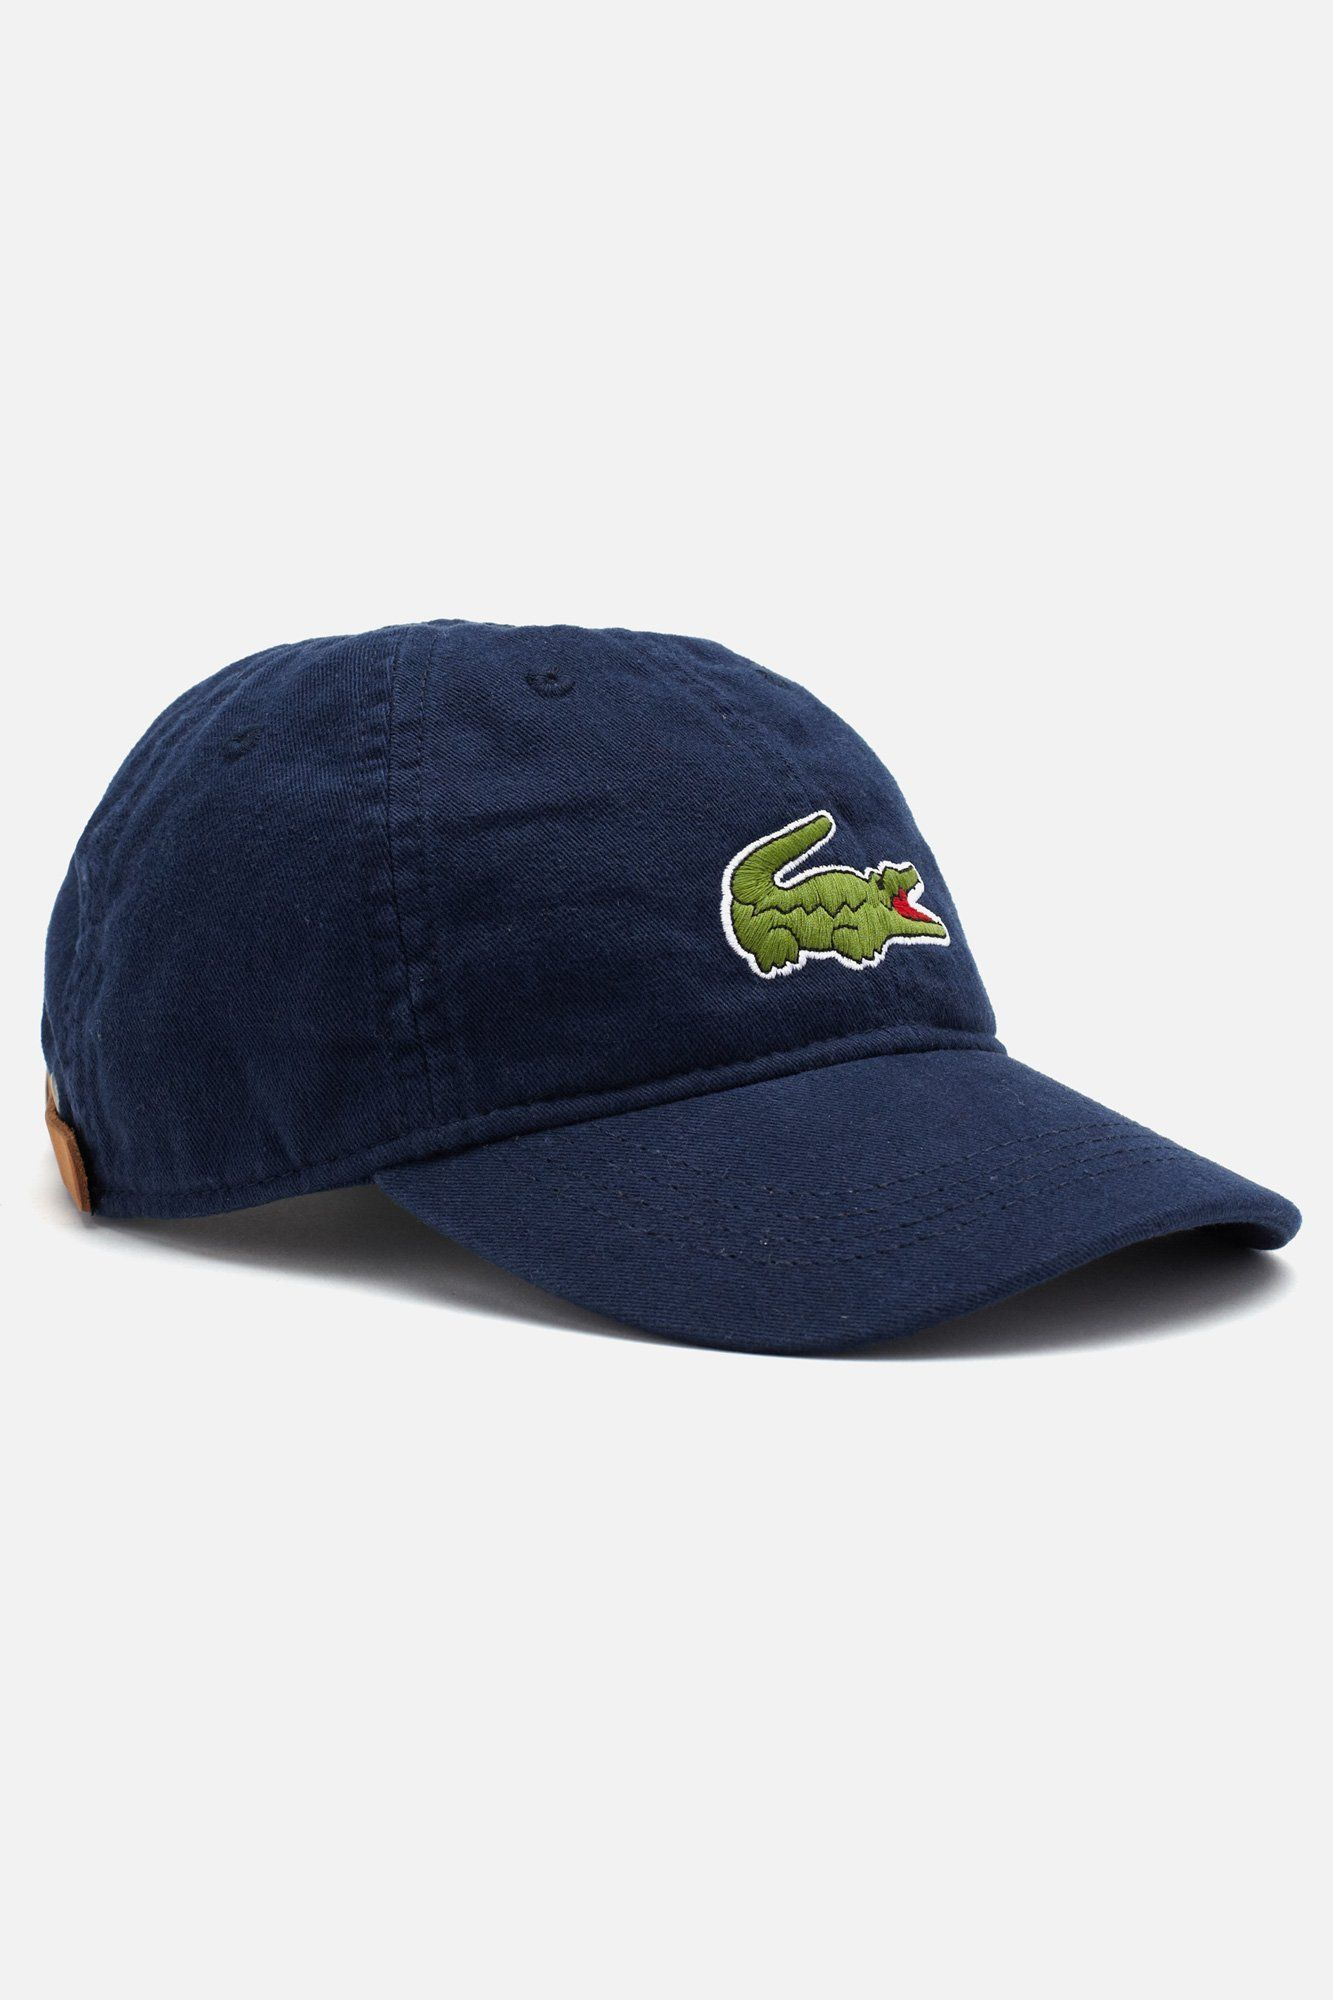 6f457576aed8 Lacoste Boy's Gabaradine Large Croc Cap : Accessories | bags | Hats ...